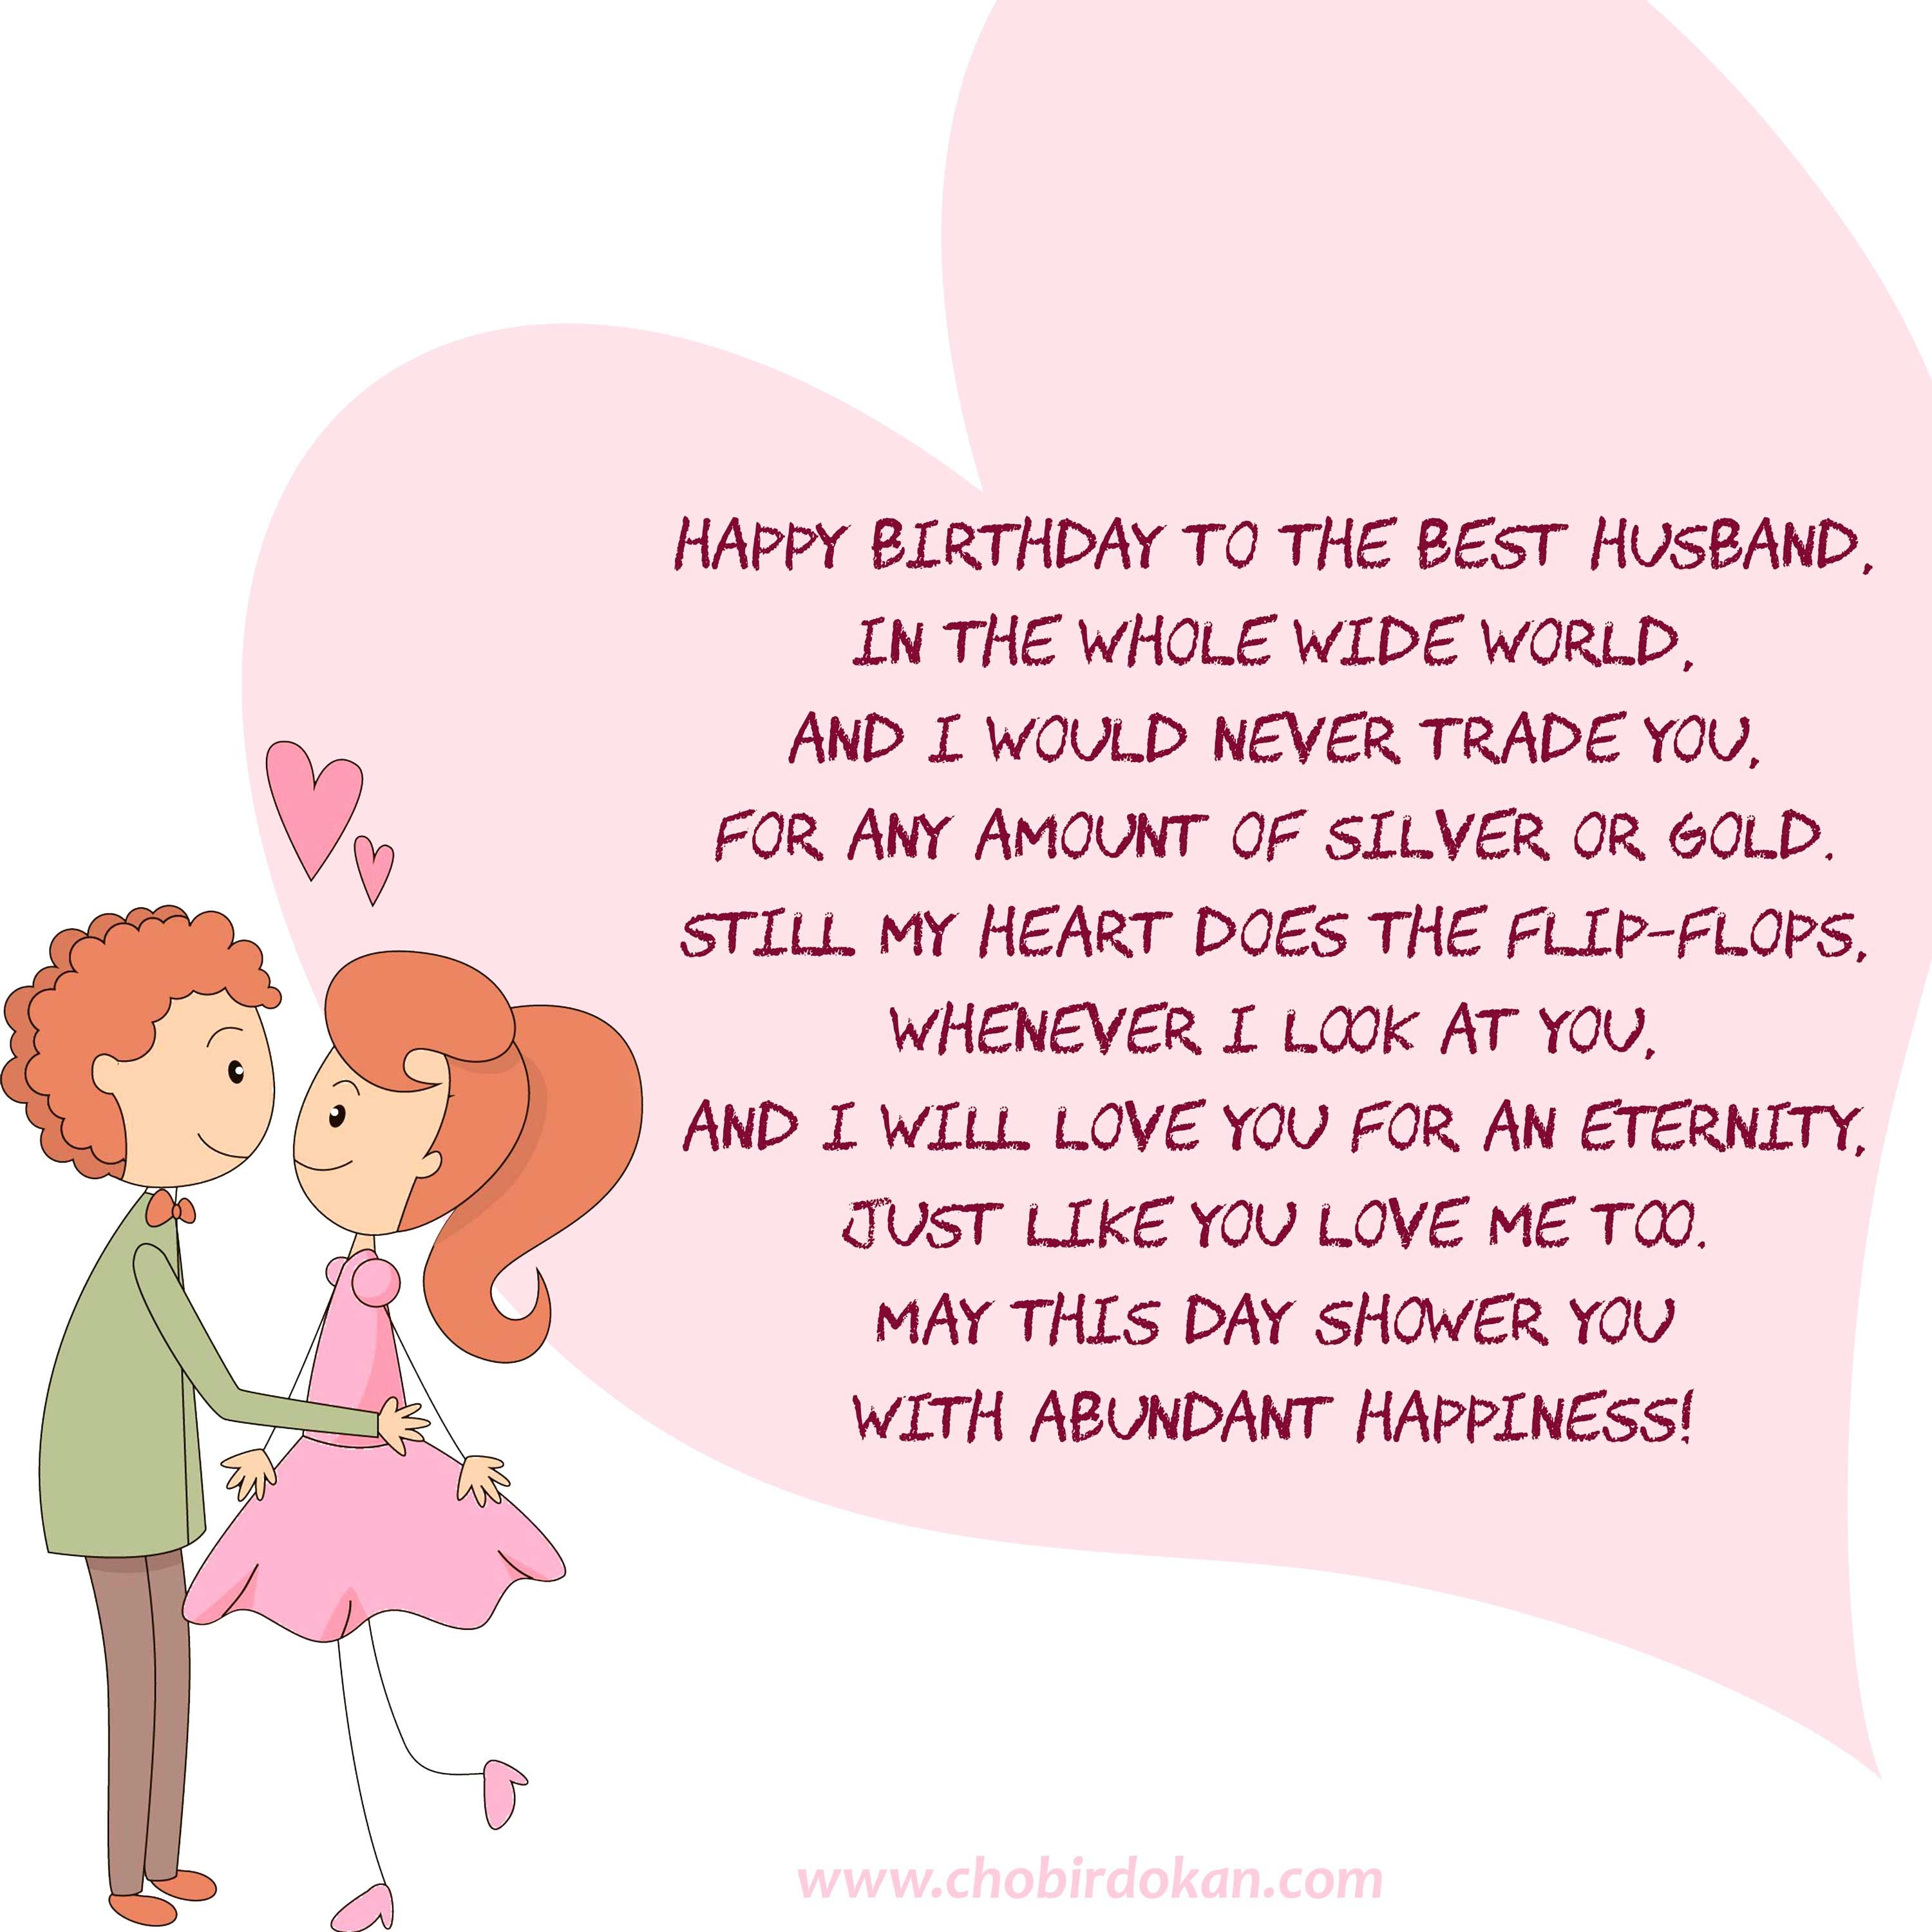 happy birthday babe poem ; happy-birthday-babe-images-best-of-are-you-looking-for-some-cute-happy-birthday-poems-for-him-of-happy-birthday-babe-images